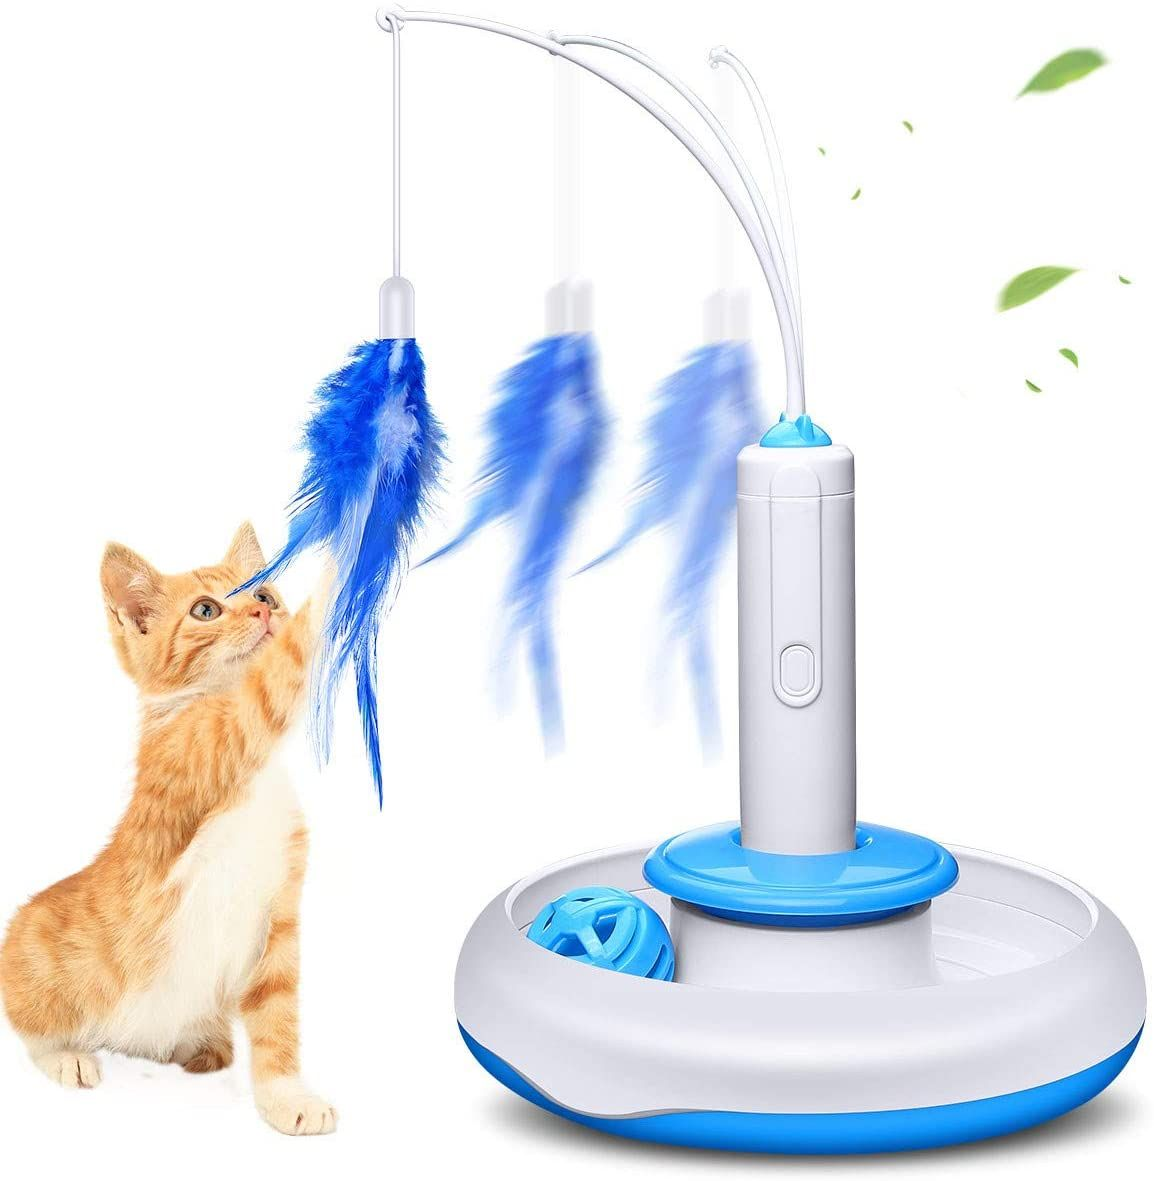 Isyoung Cat Teasing Toy Electric Mute Training Cat Toy Kitten Rotating Teaser Feather Fun Playing Interactive Smart Game Pet T In 2020 Pet Toys Cat Toys Pet Cat Toys